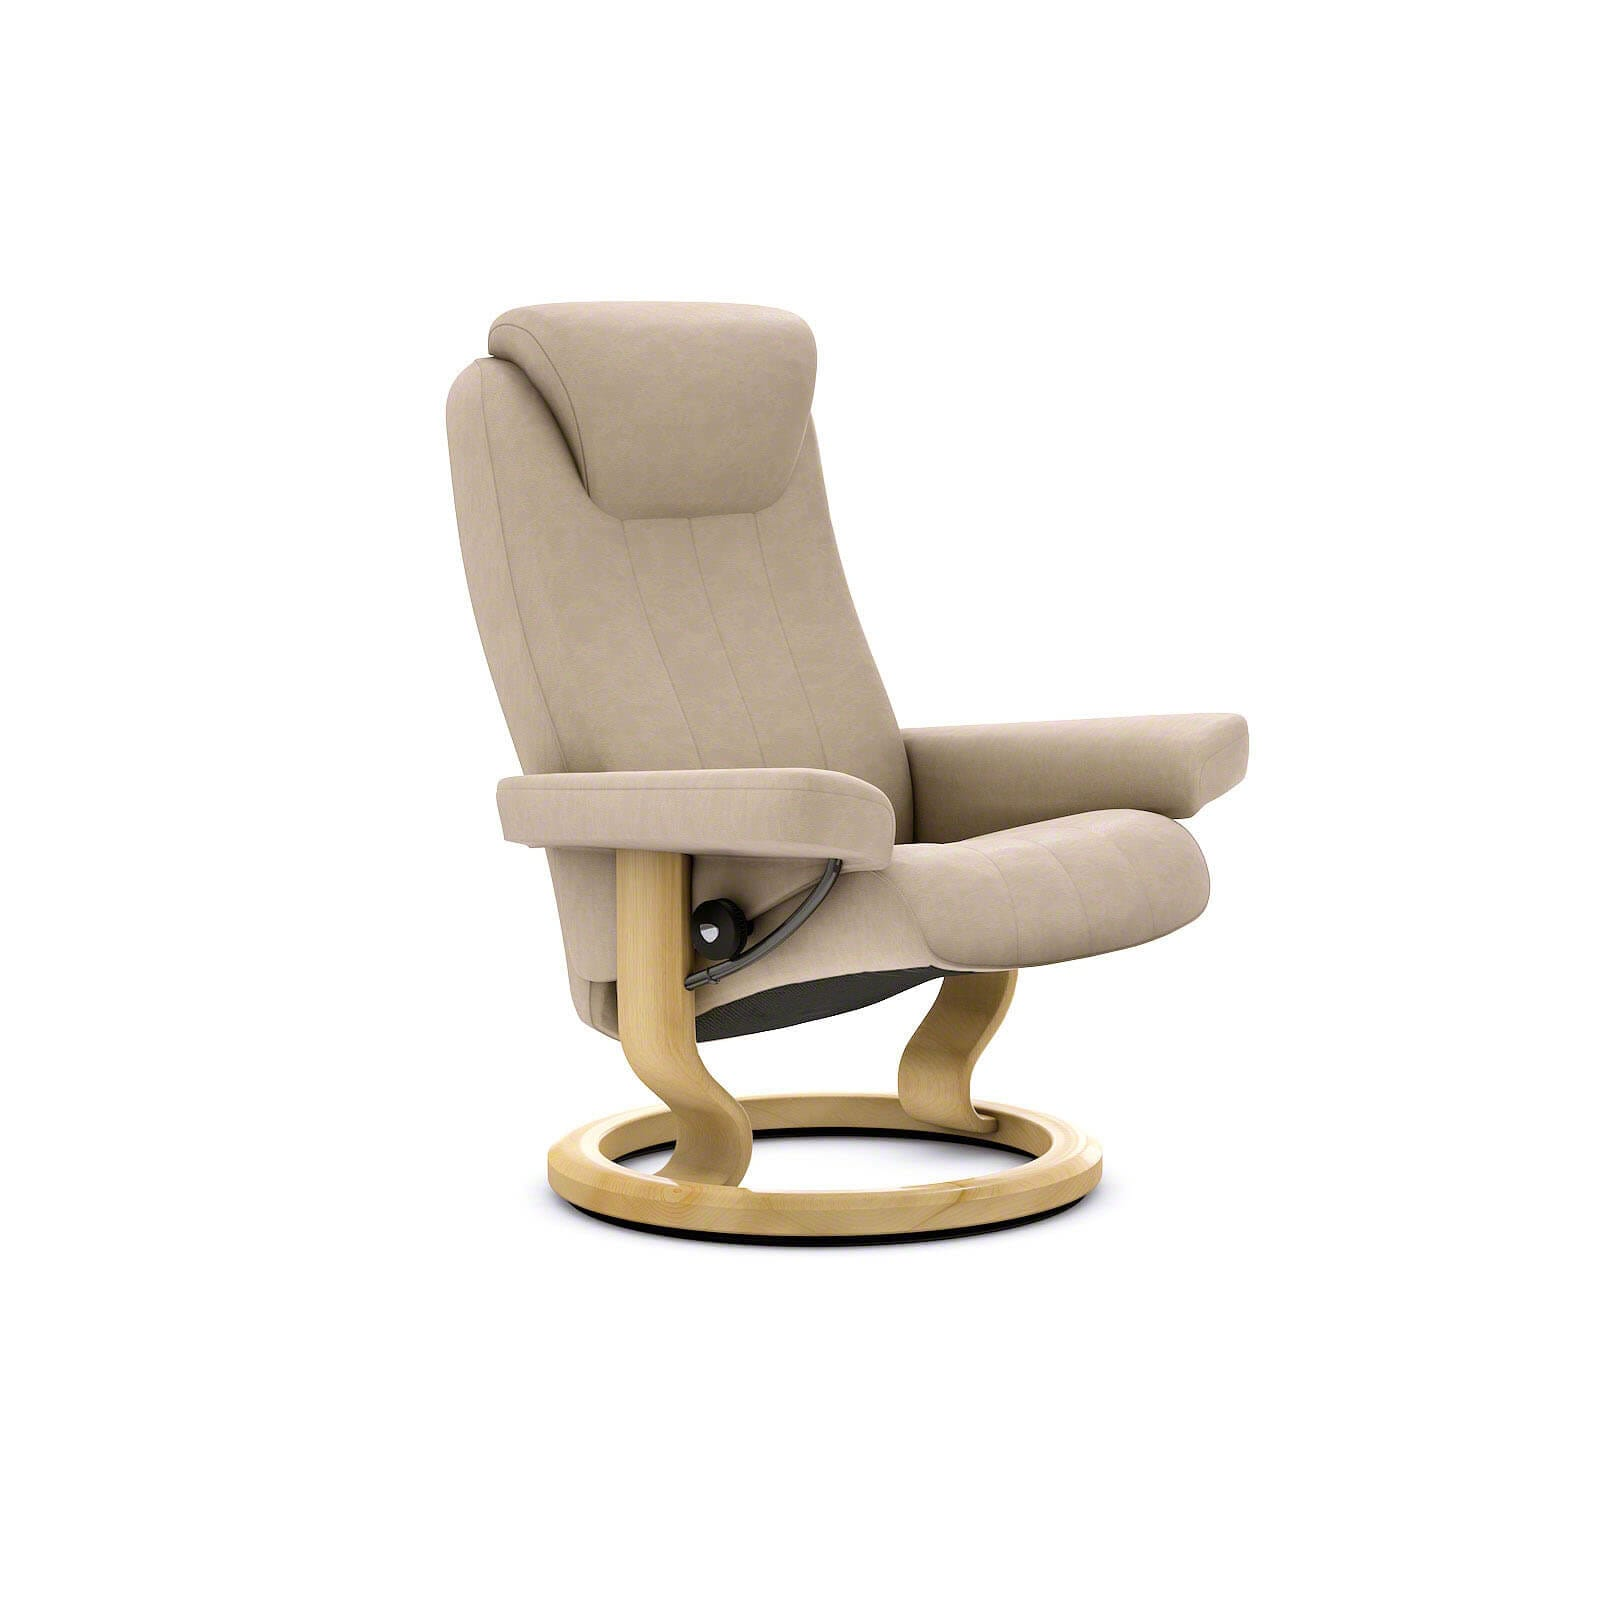 Stressless Bliss Sessel Beige Stressless Mobel Online Shop